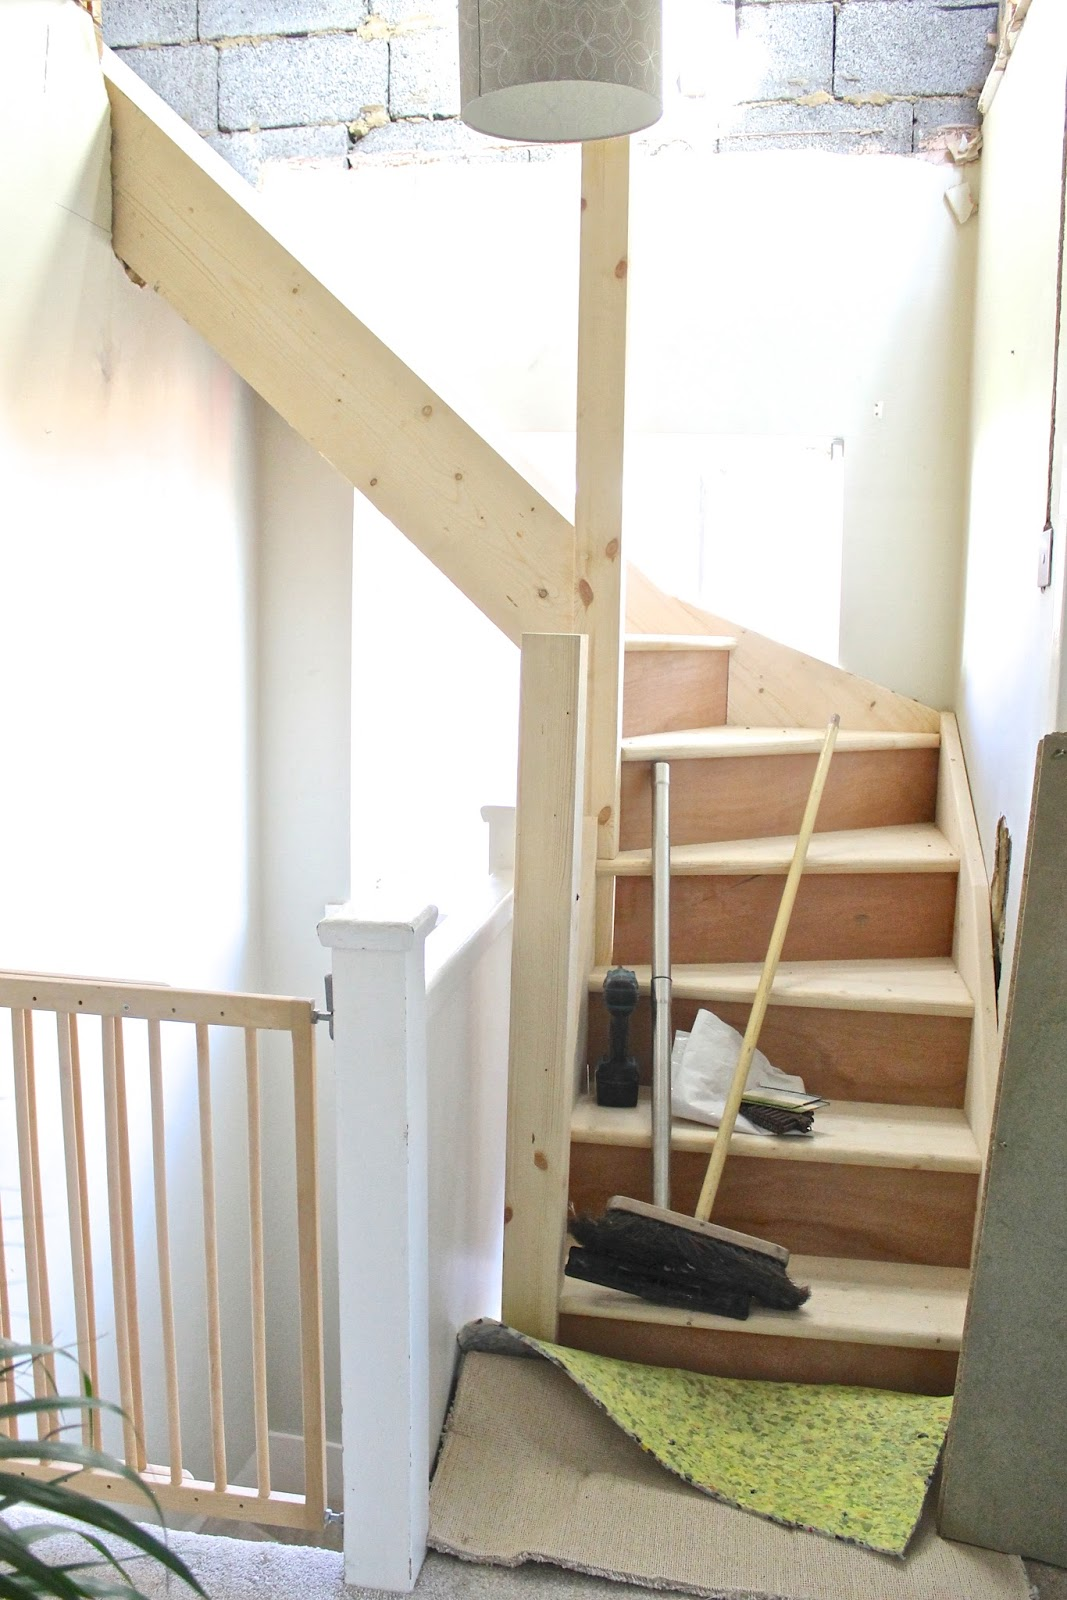 Our Loft Conversion The Stairs Are In An Update Bump To Baby Beyond Blog Uk Based